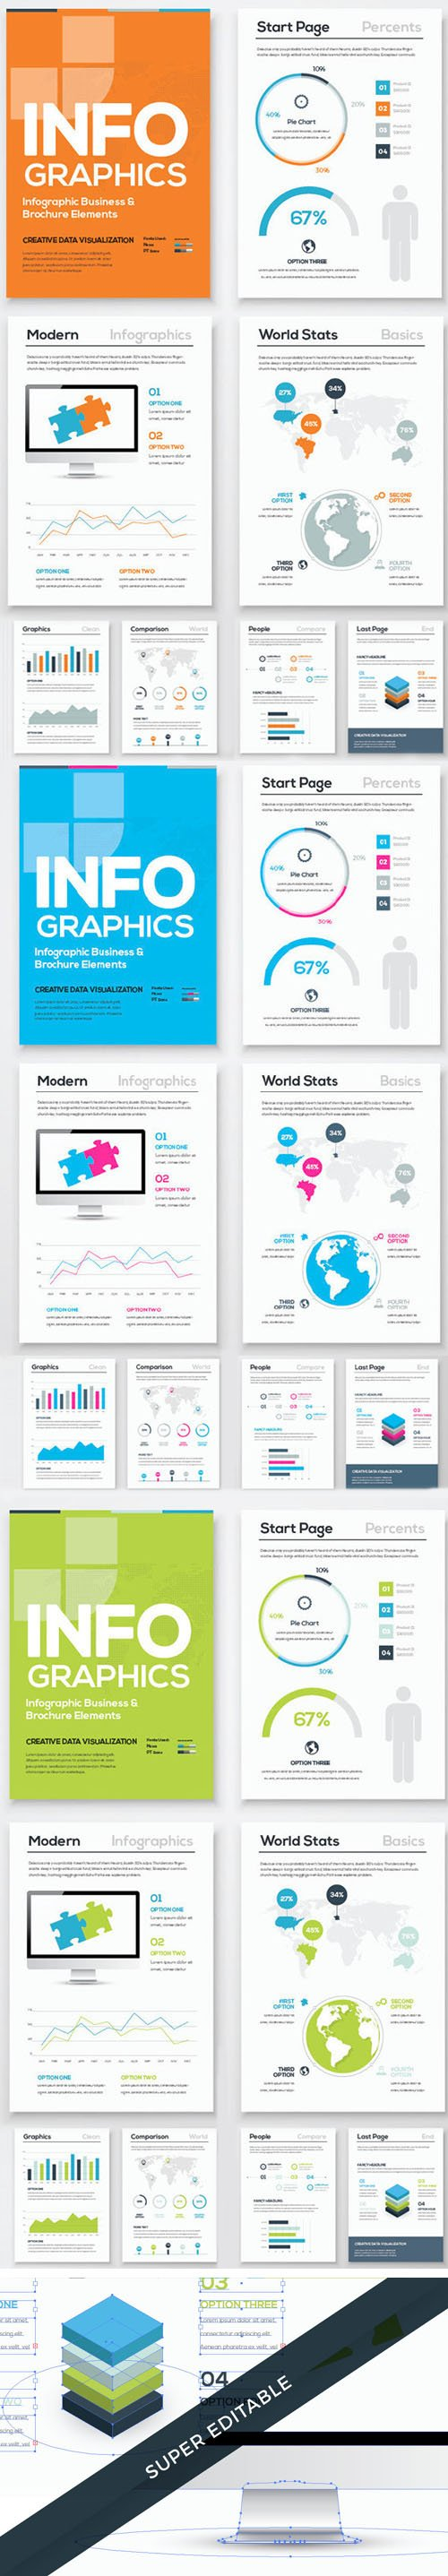 Infographic Brochure Vector Templates [AI/EPS]